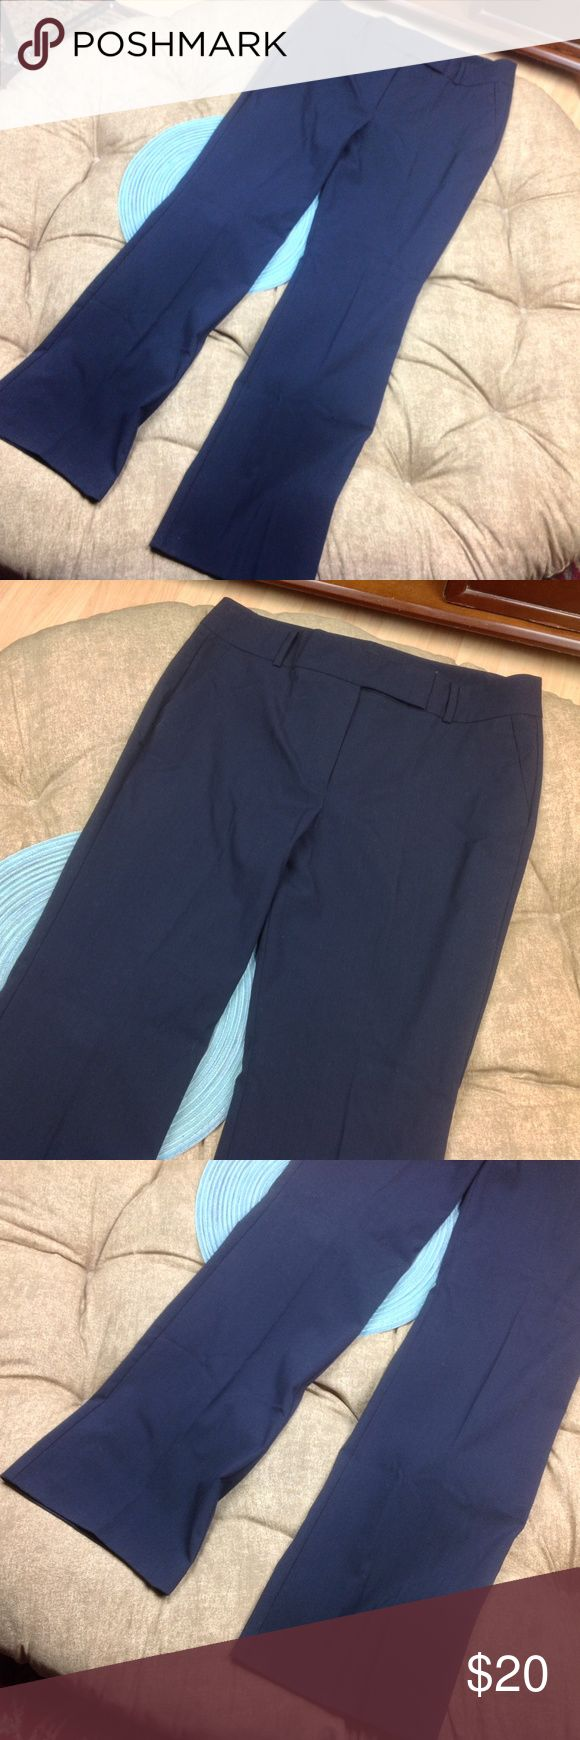 Ann Taylor Dress Pants 12 Women Signature Blue Great Condition; Ann Taylor Dress Pants 12 Women Signature Dark Blue Pockets Straight Trouser; 32 inch inseam 17.5 inch across waist 11.5 inch rise 63/35/2 Polyester/Rayon/Spandex Ann Taylor Pants Trousers